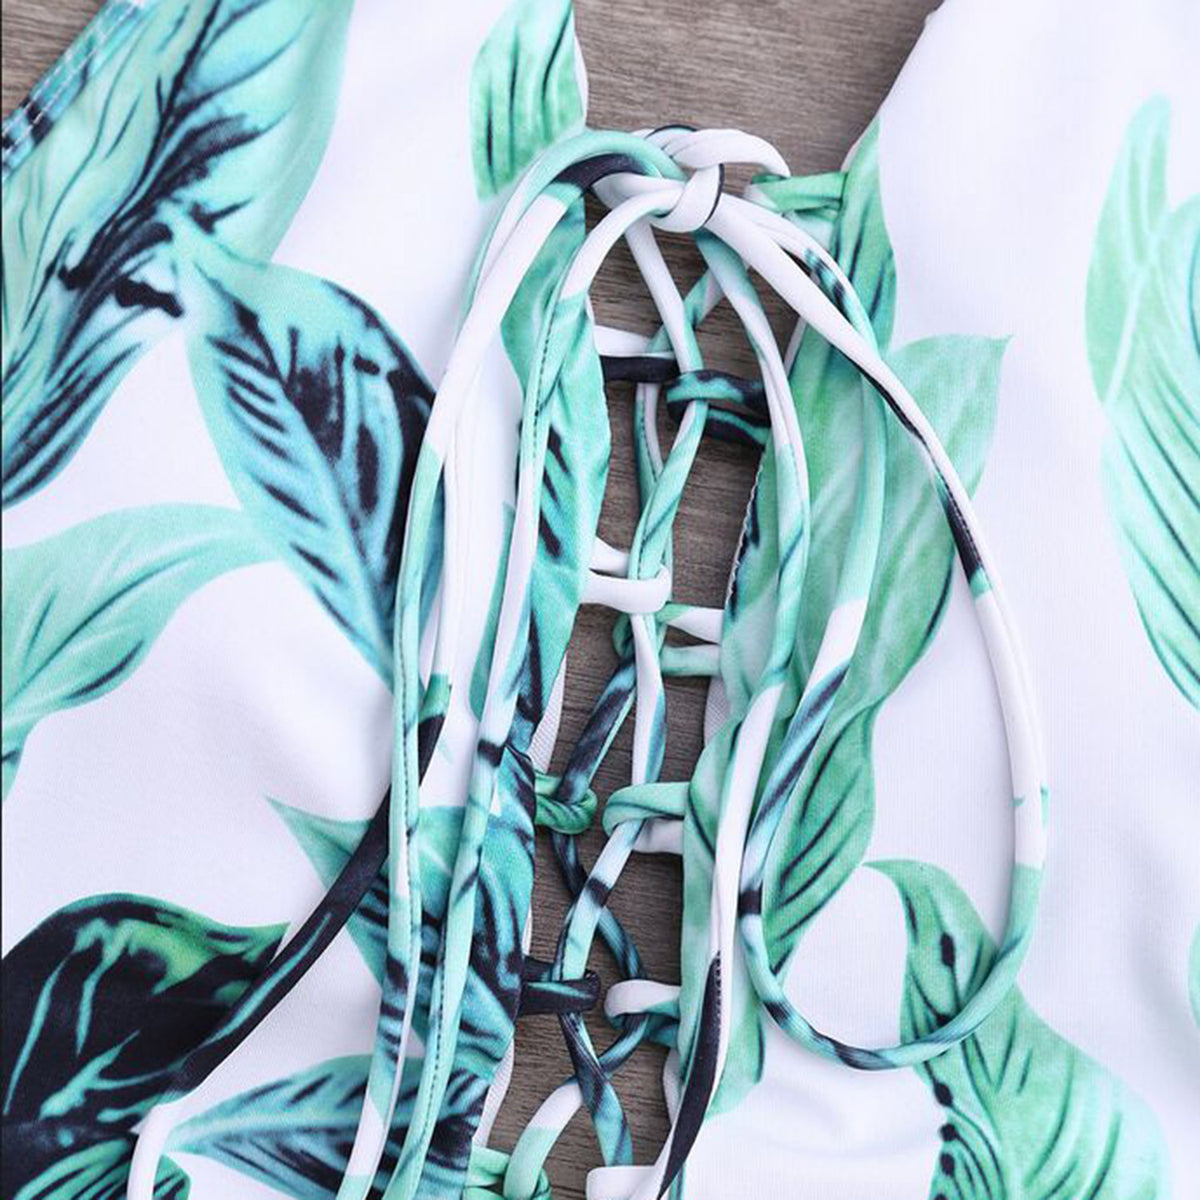 Leaves Print Lace Up One Piece Bikini Set - worthtryit.com